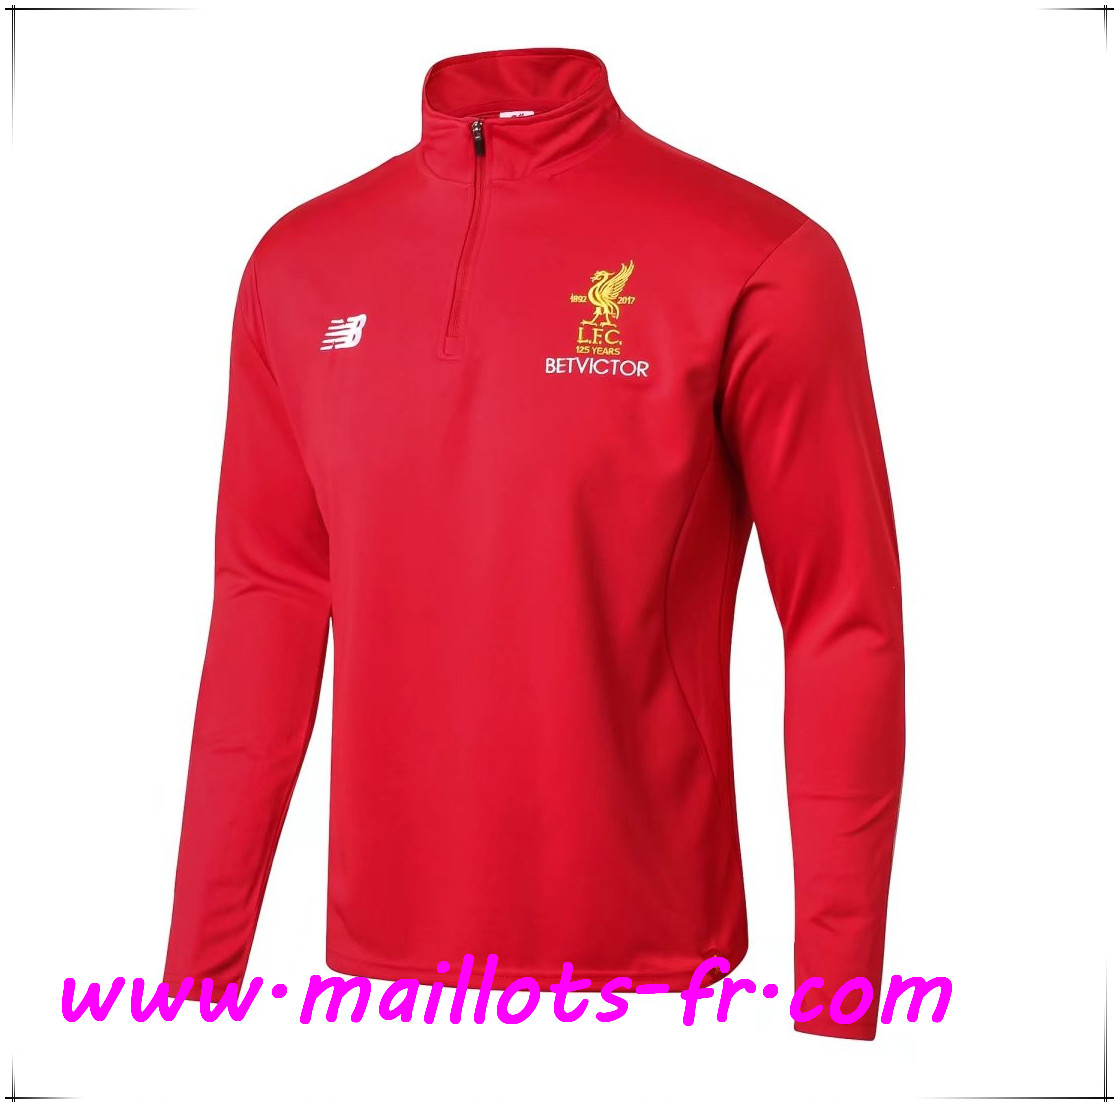 Maillots-fr Thailande Sweatshirt Training FC Liverpool Rouge 2017/2018